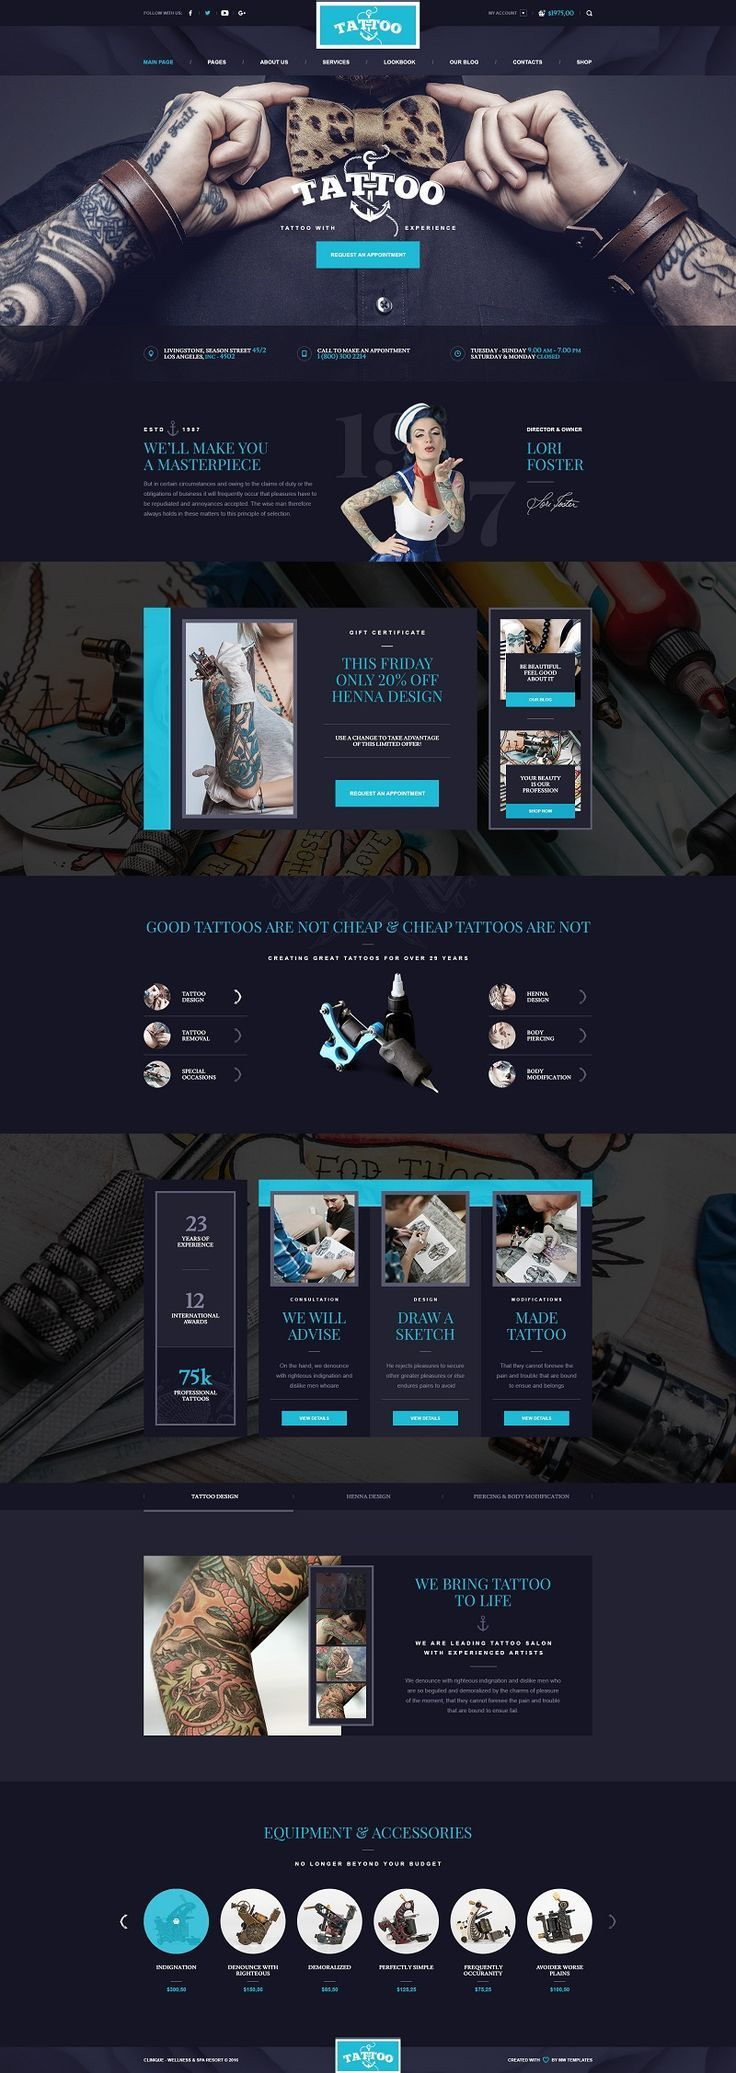 Lovely Best WordPress Themes 2017 For Web Designers, Creative Agencies,  Freelancers And Other Businesses With Need For Professional Website  Solution.